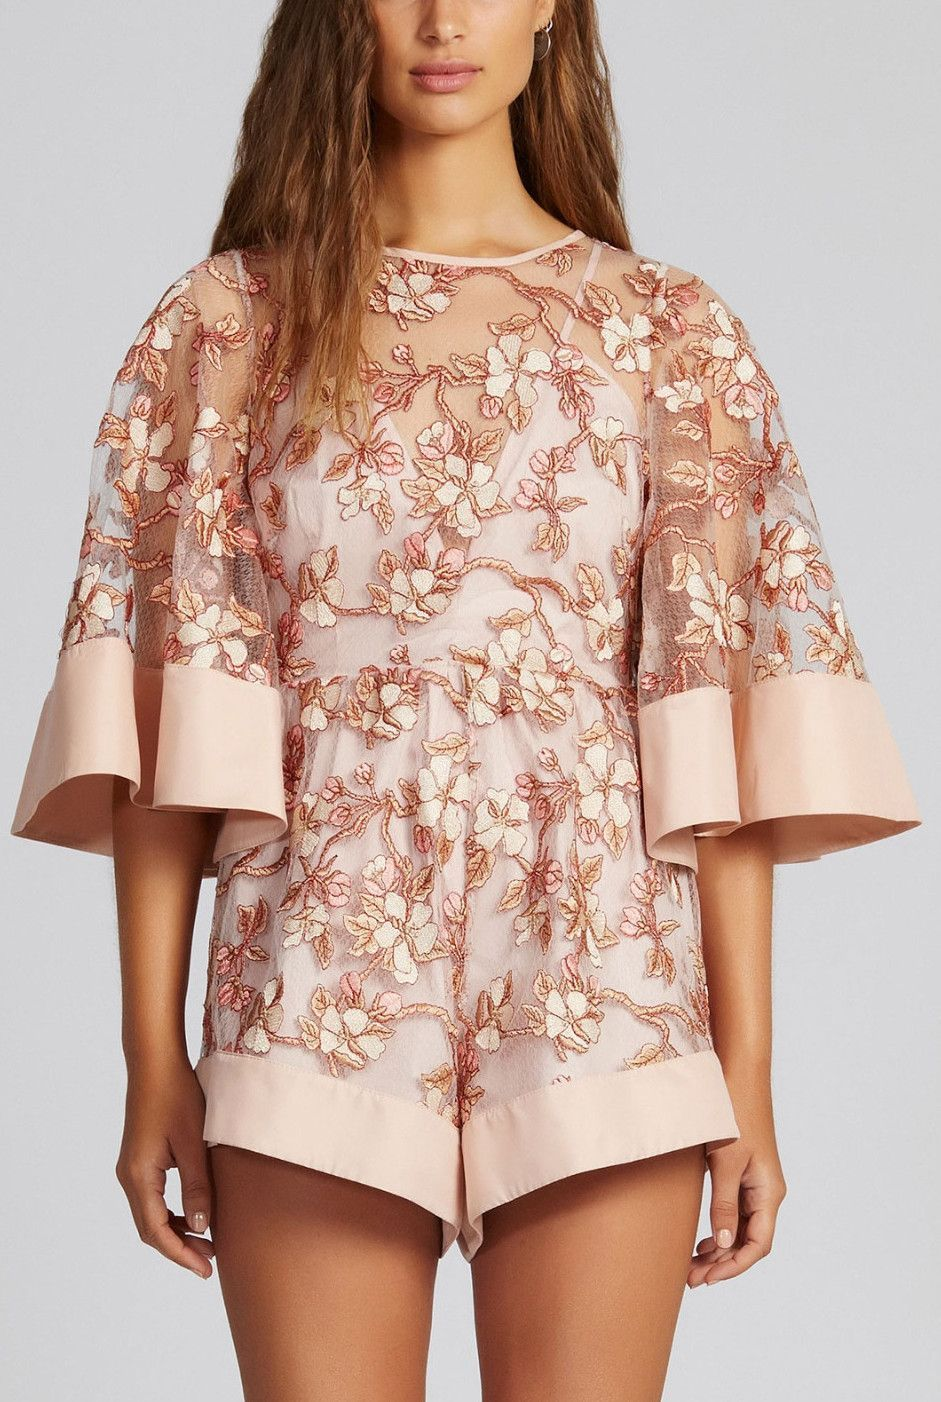 Blush blossomu embroidered playsuit playsuits and products